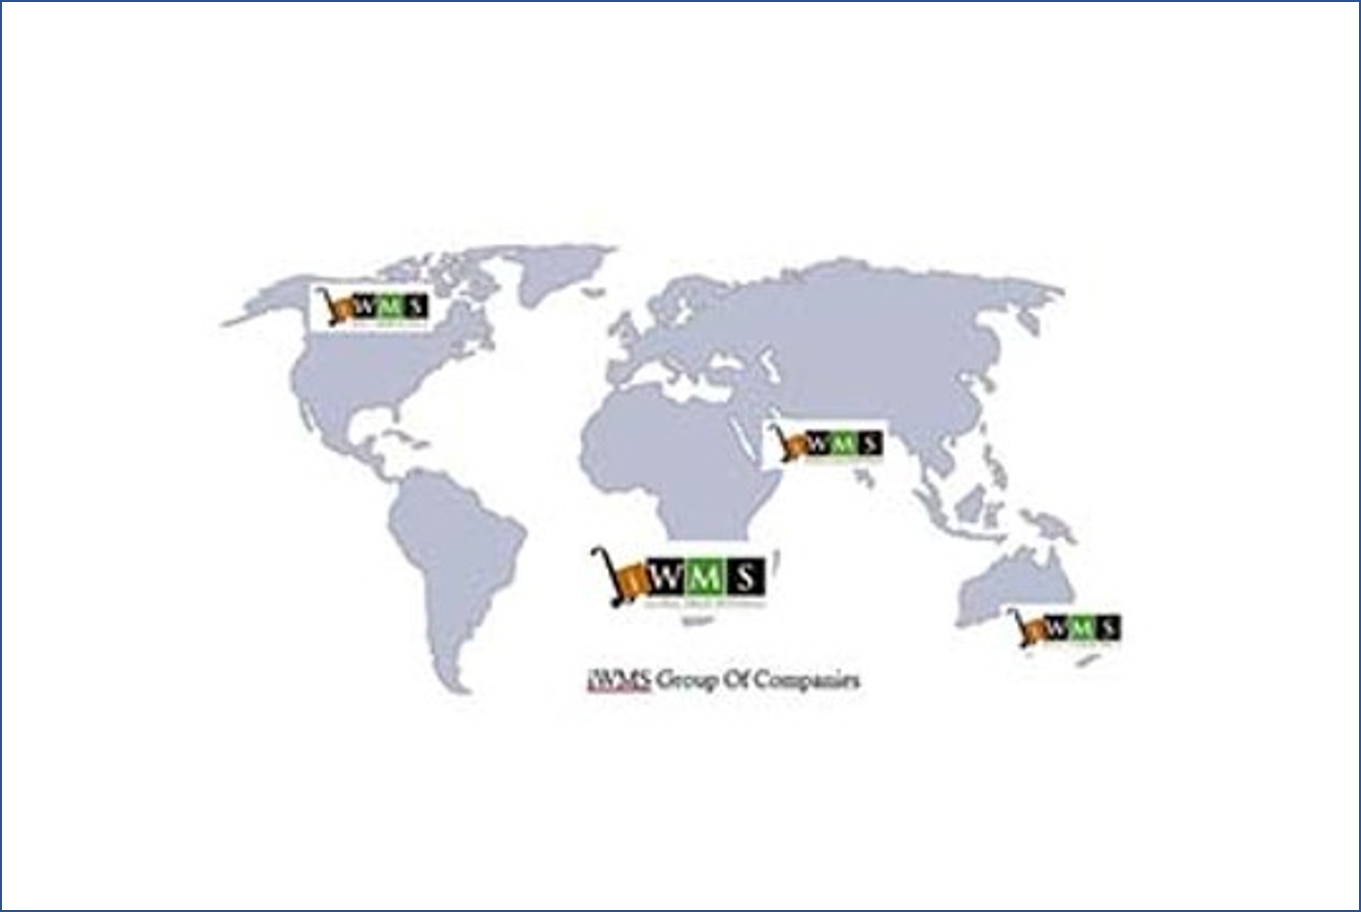 INTRODUCING NEW ZEALAND AND AUSTRALIA INTO IWMS' GROUP OF COMPANIES